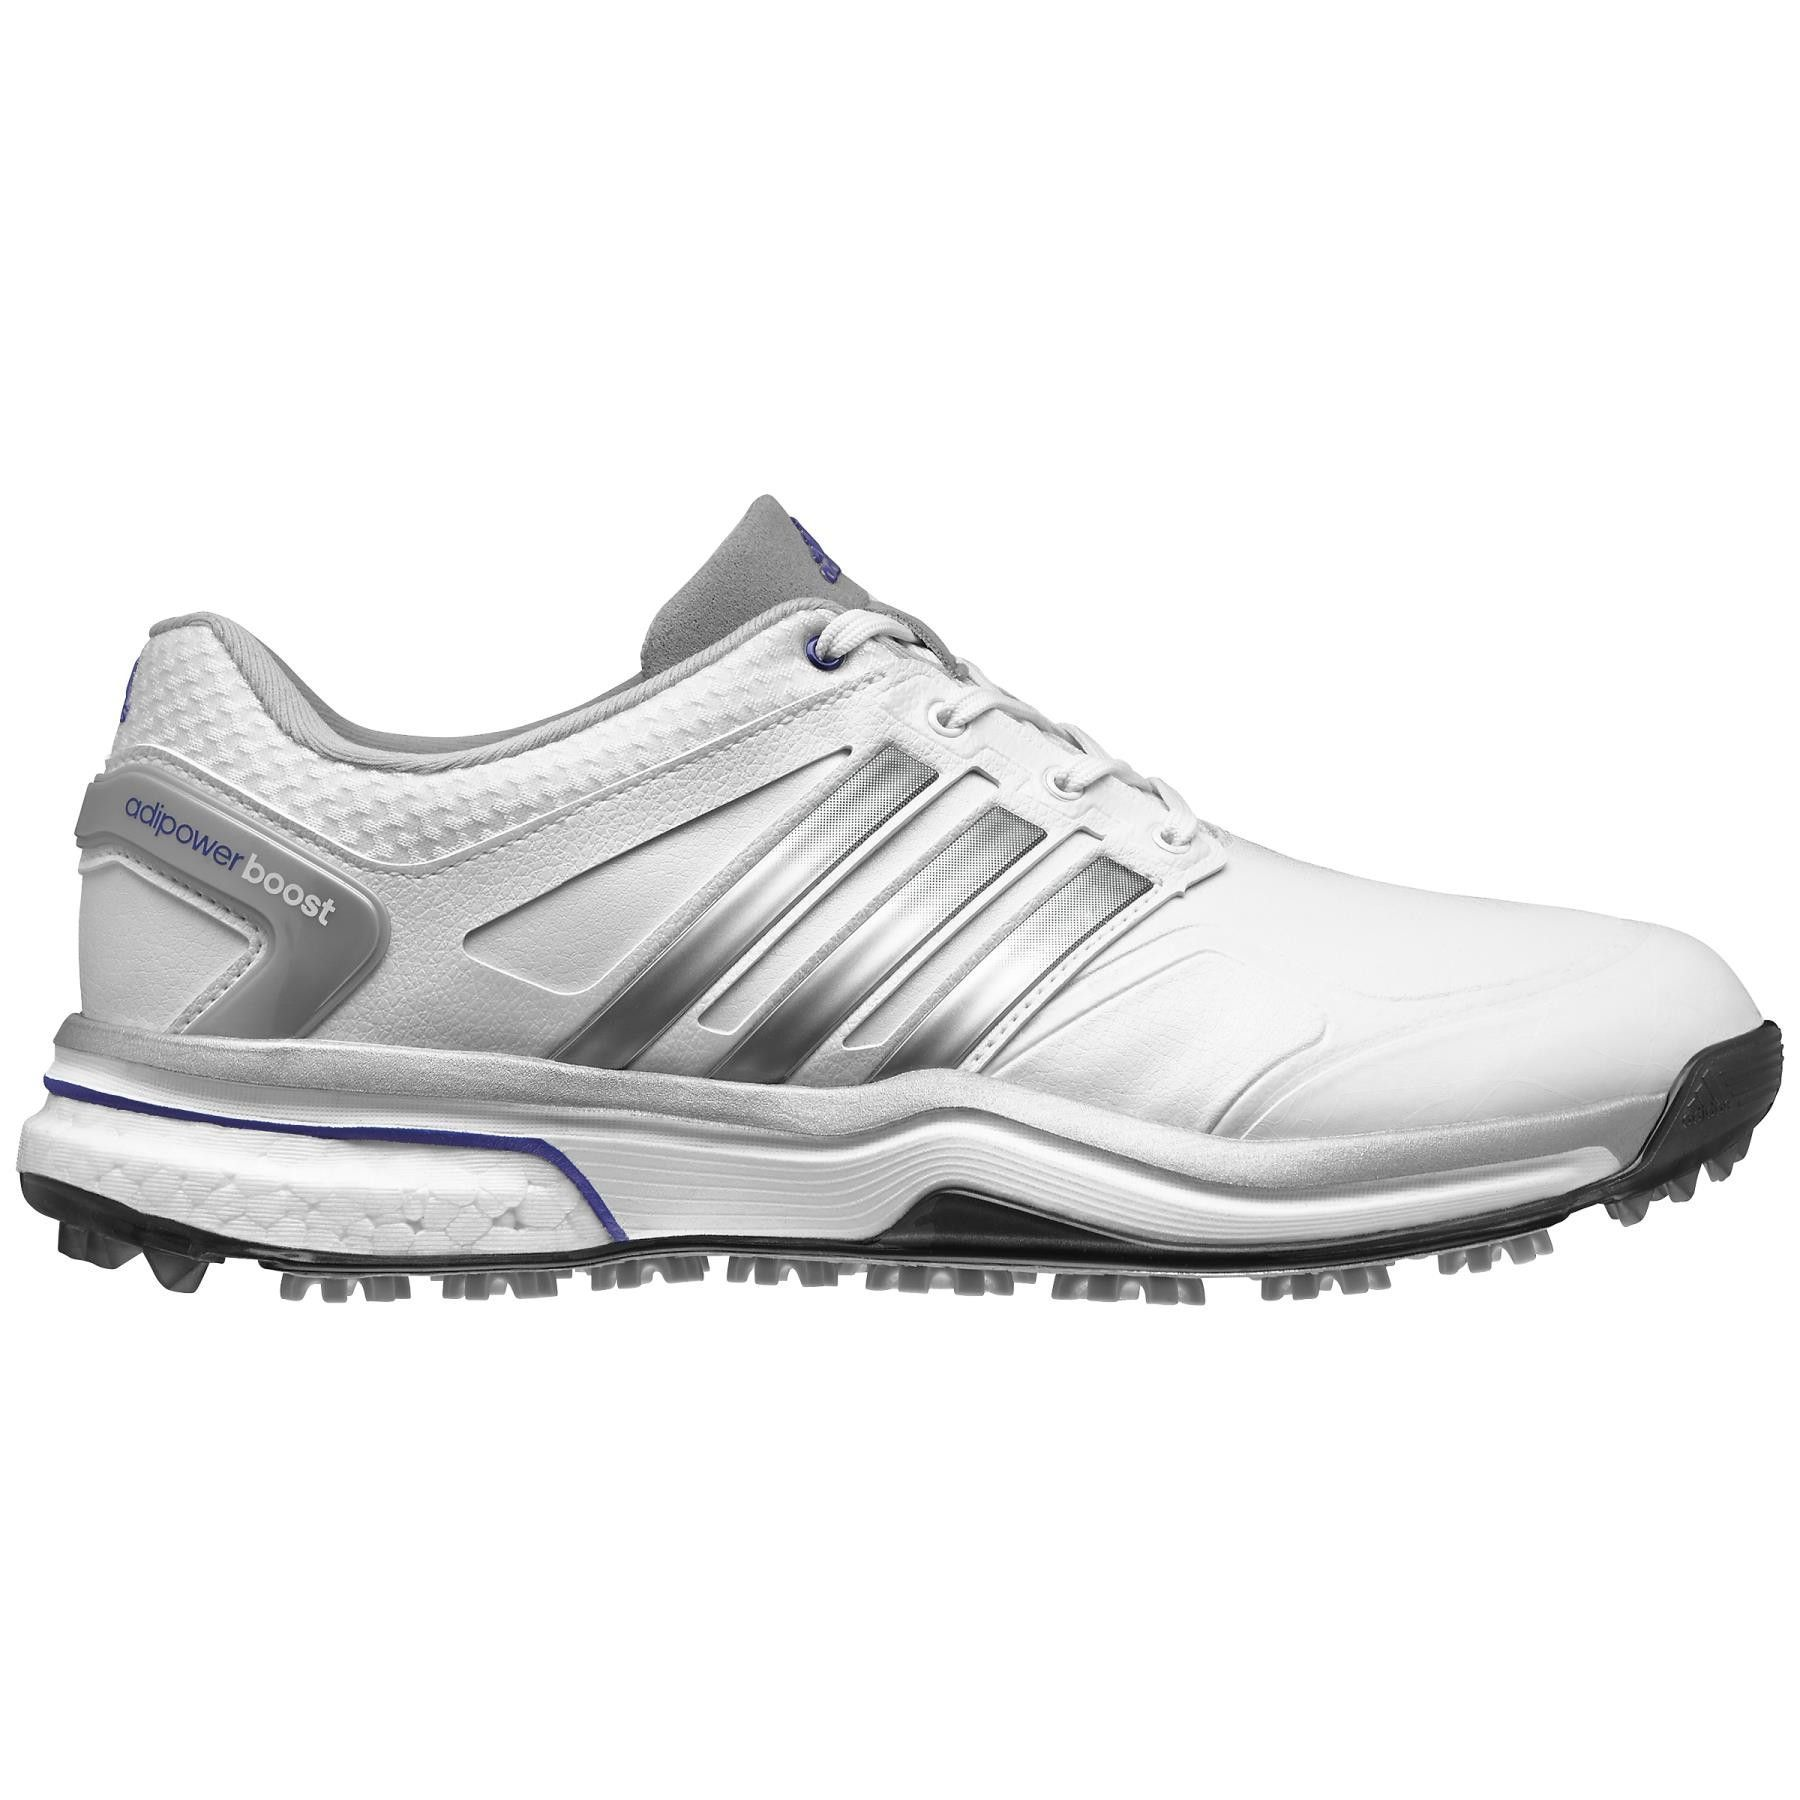 Adidas Adipower Boost Womens Golf Shoe Best Golf Shoes Adidas